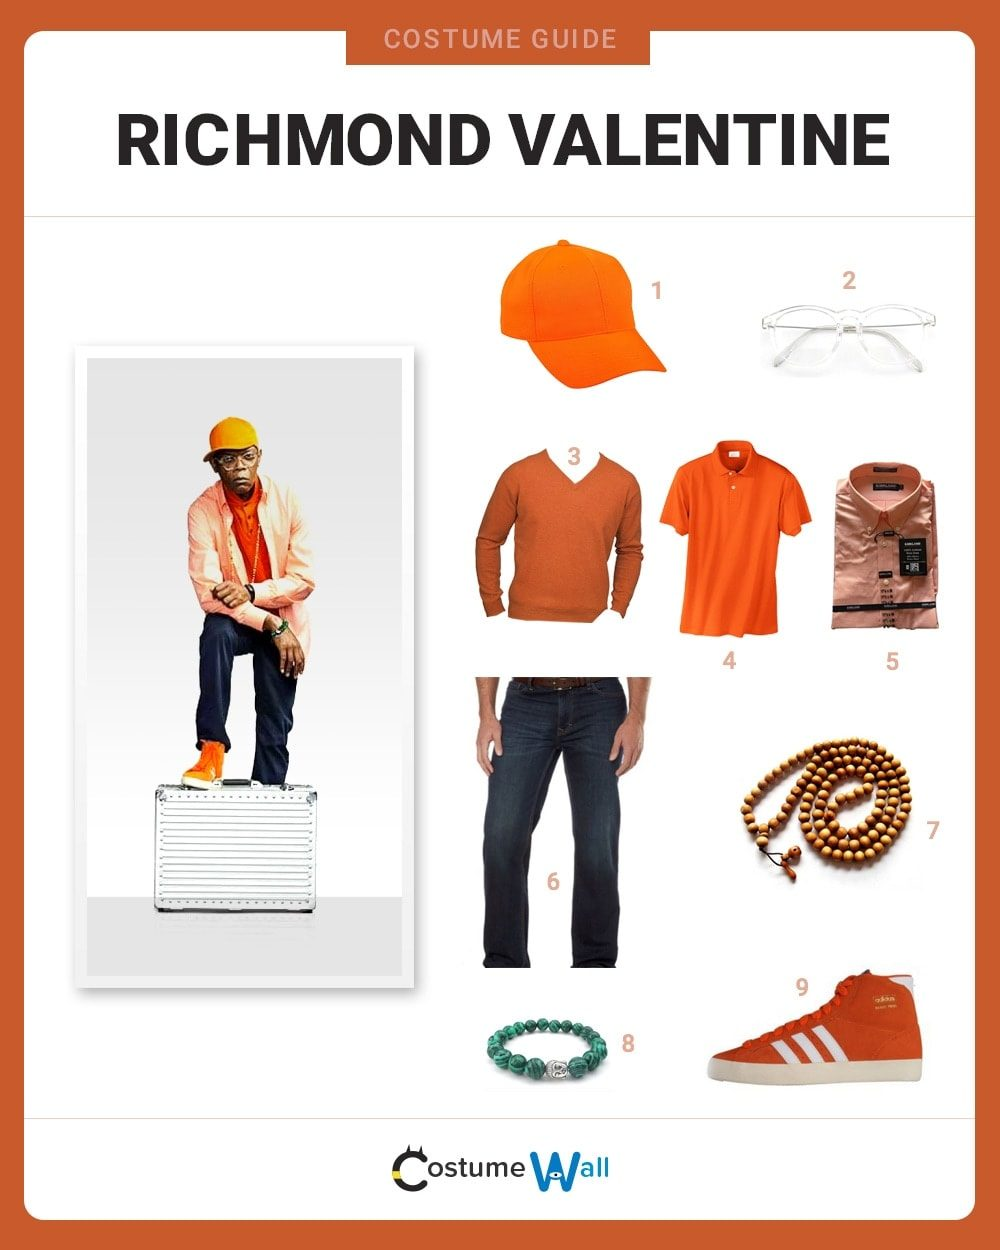 Richmond Valentine Costume